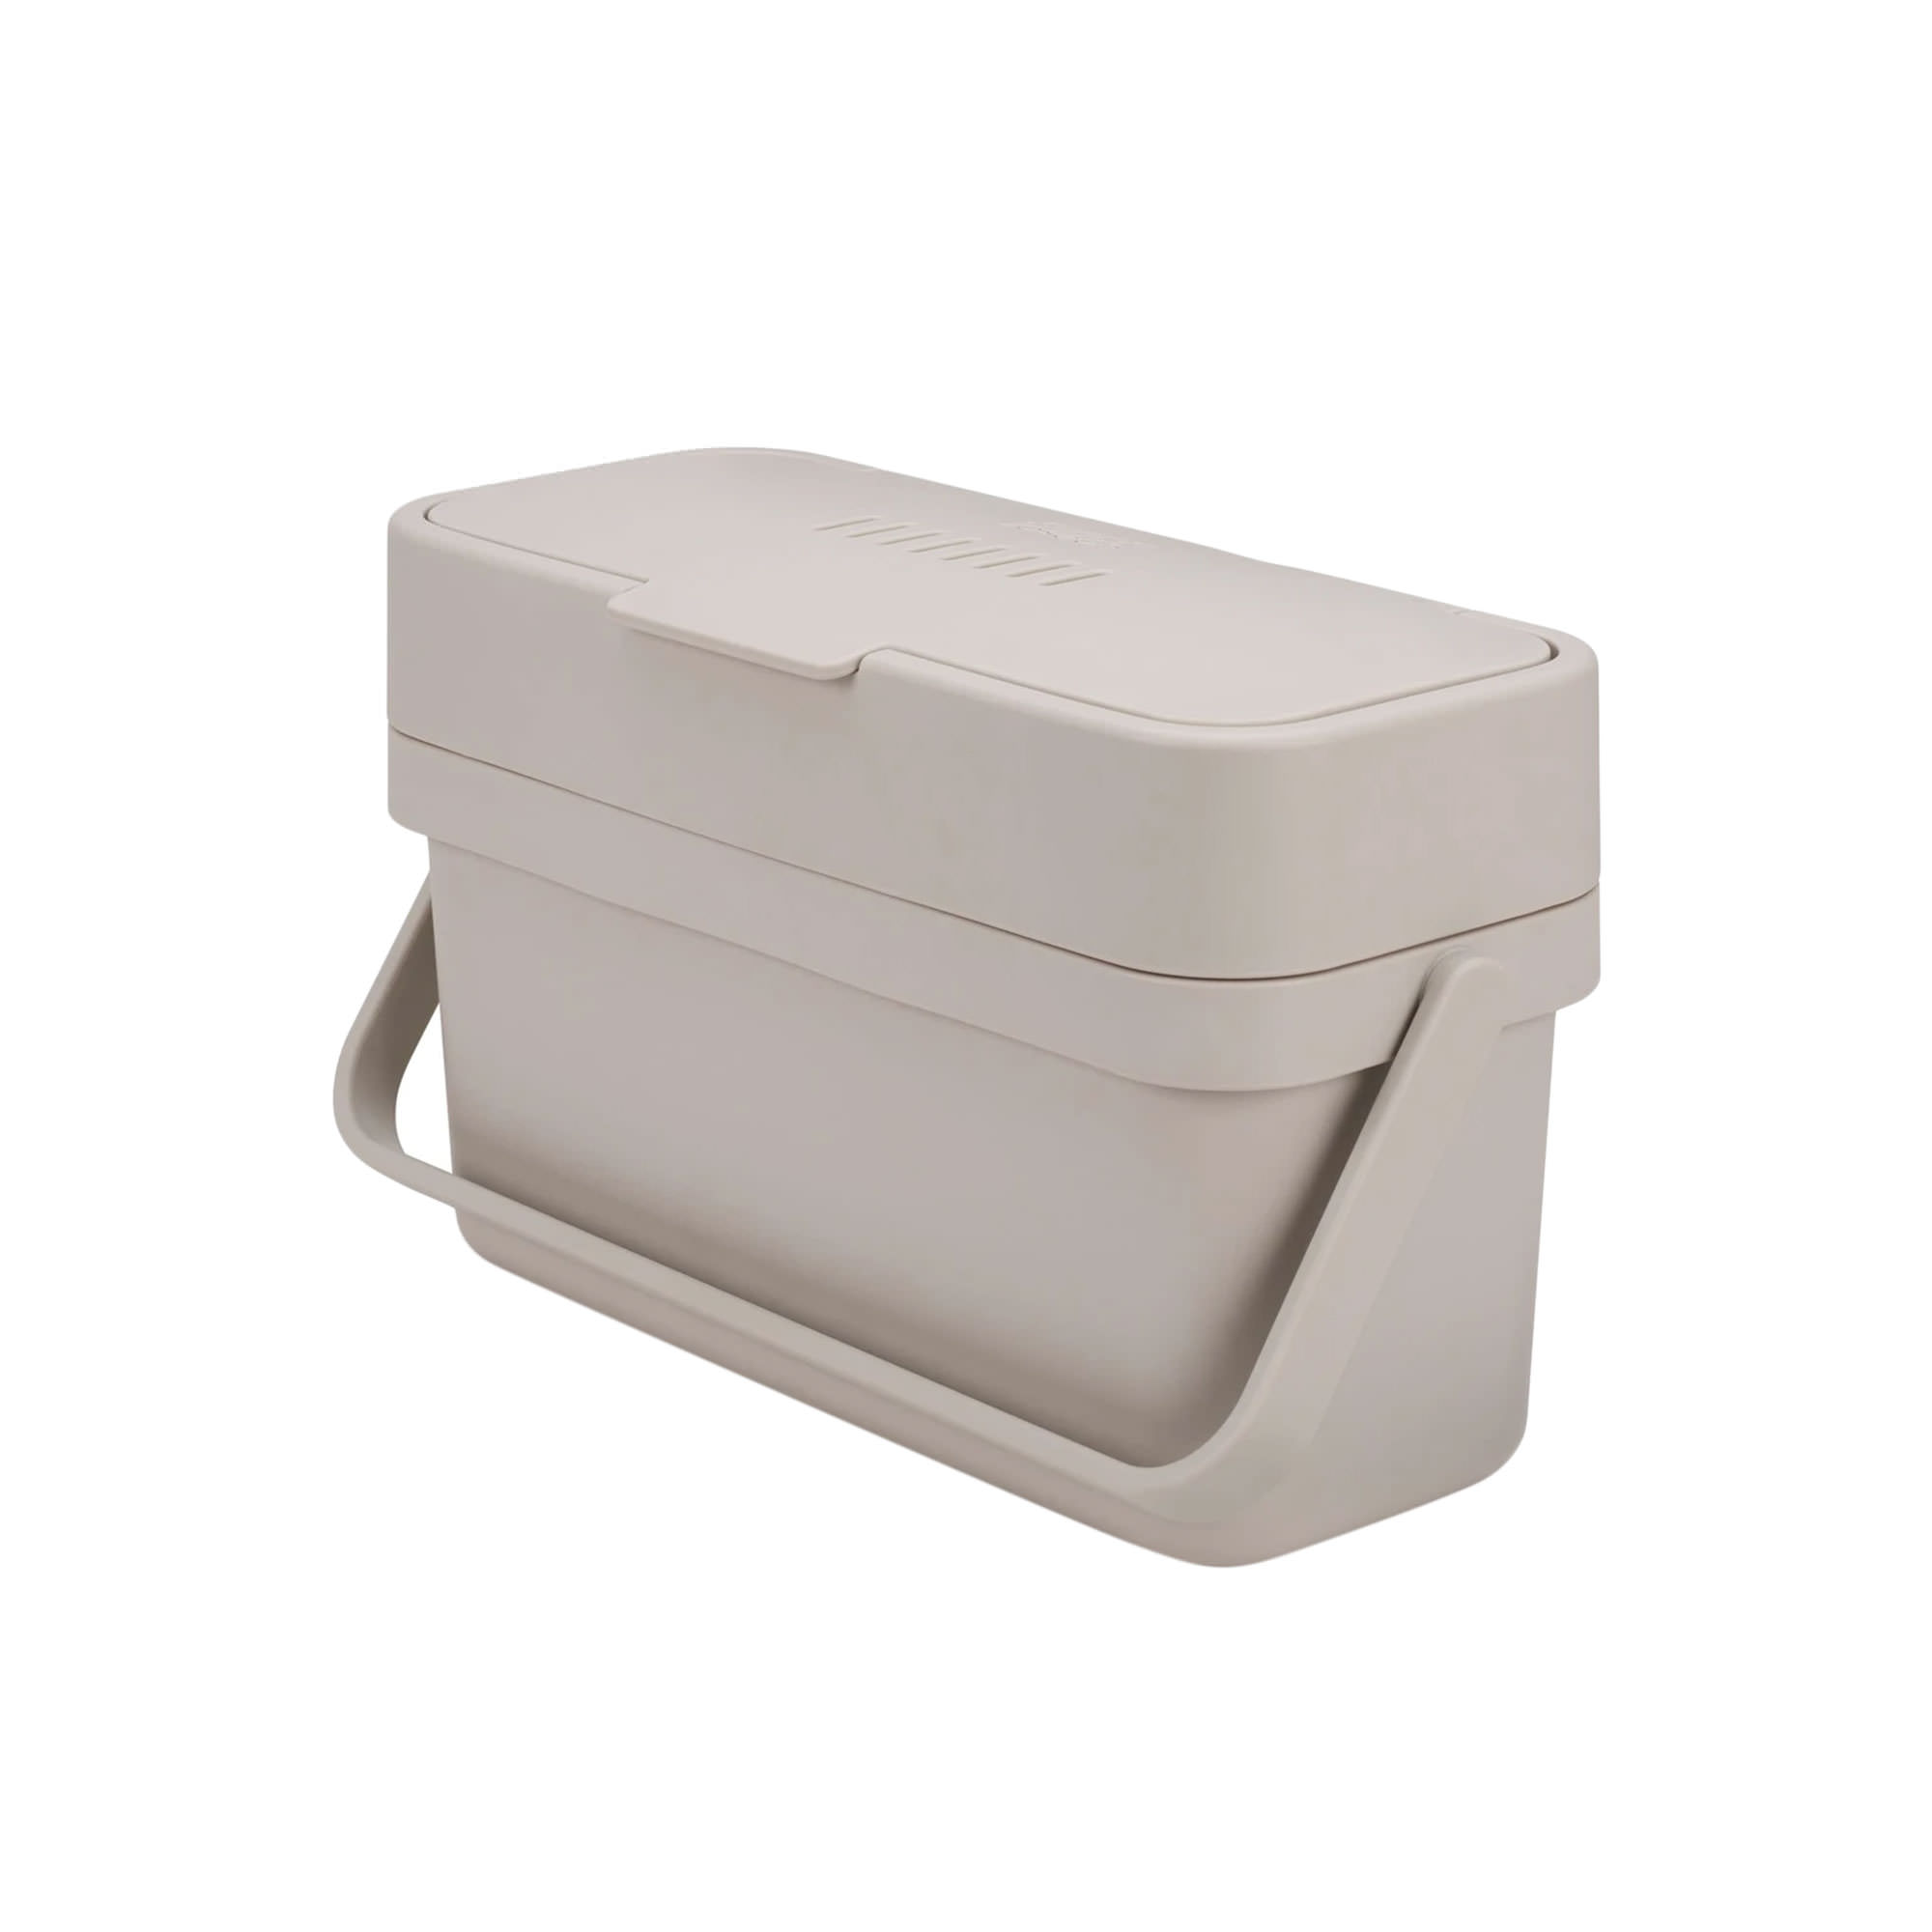 Joseph Joseph Compo 4 Food Waste Caddy White